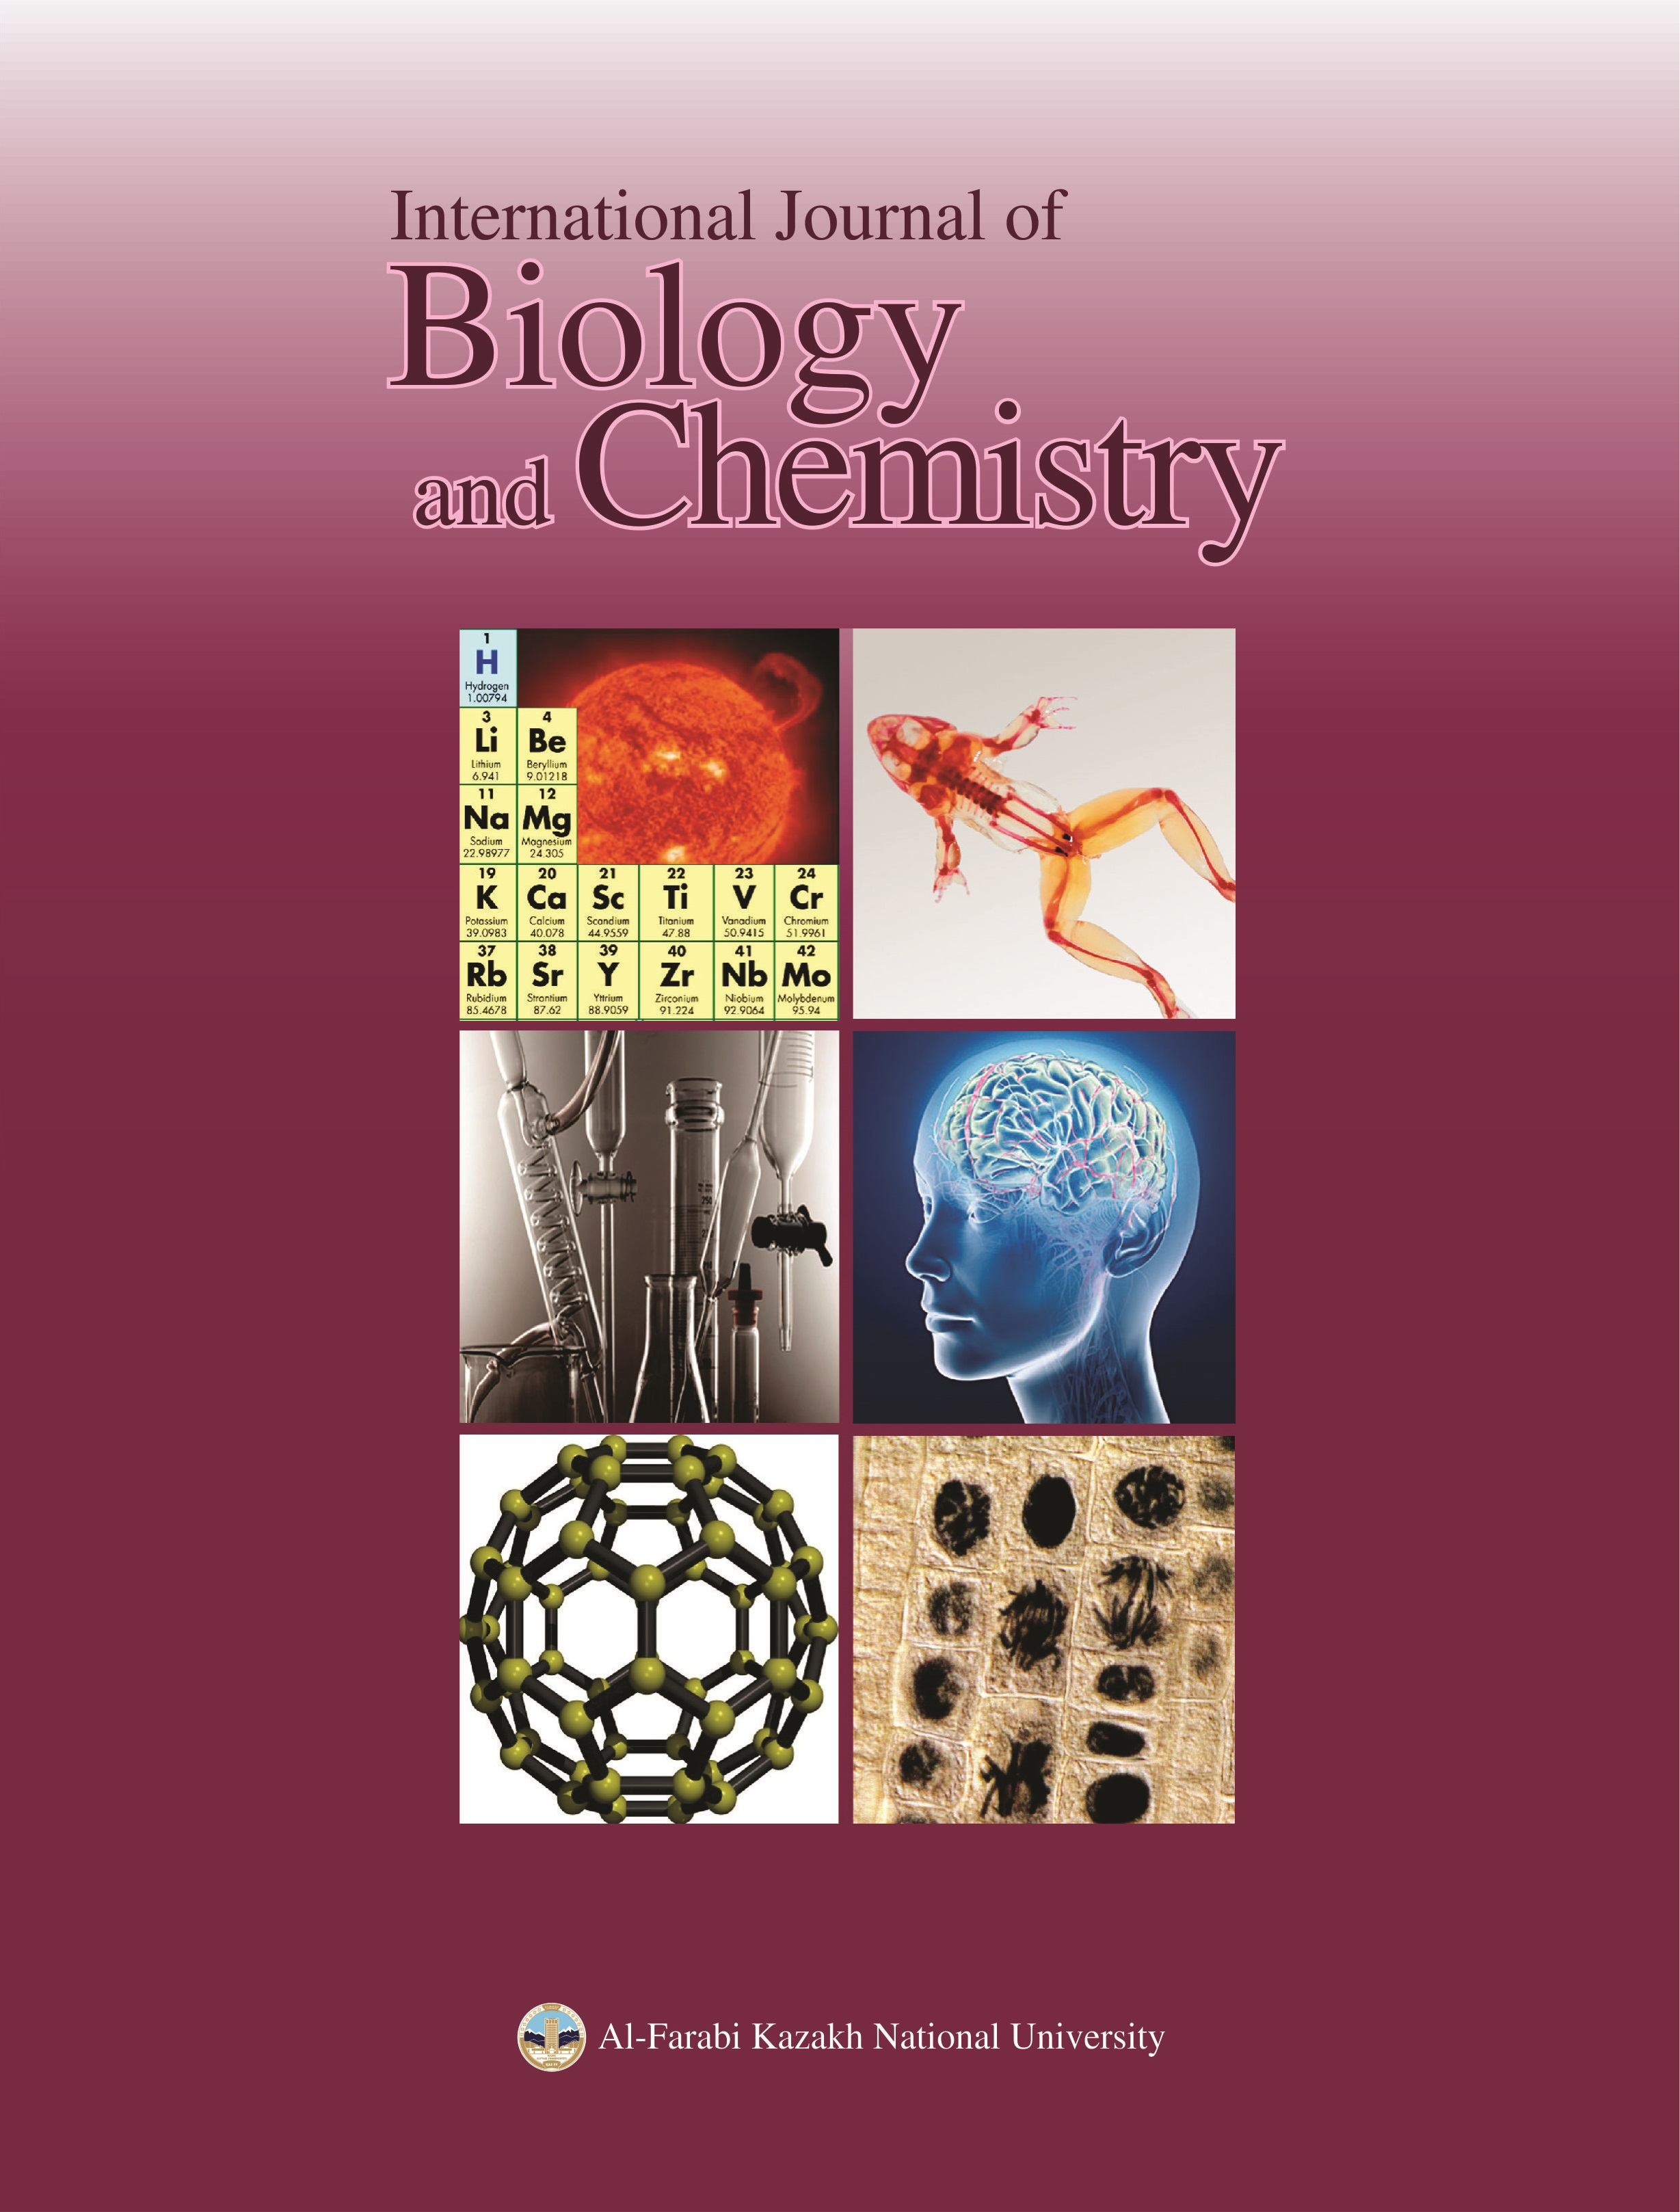 View Vol. 8 No. 1 (2015): International Journal of Biology and Chemistry